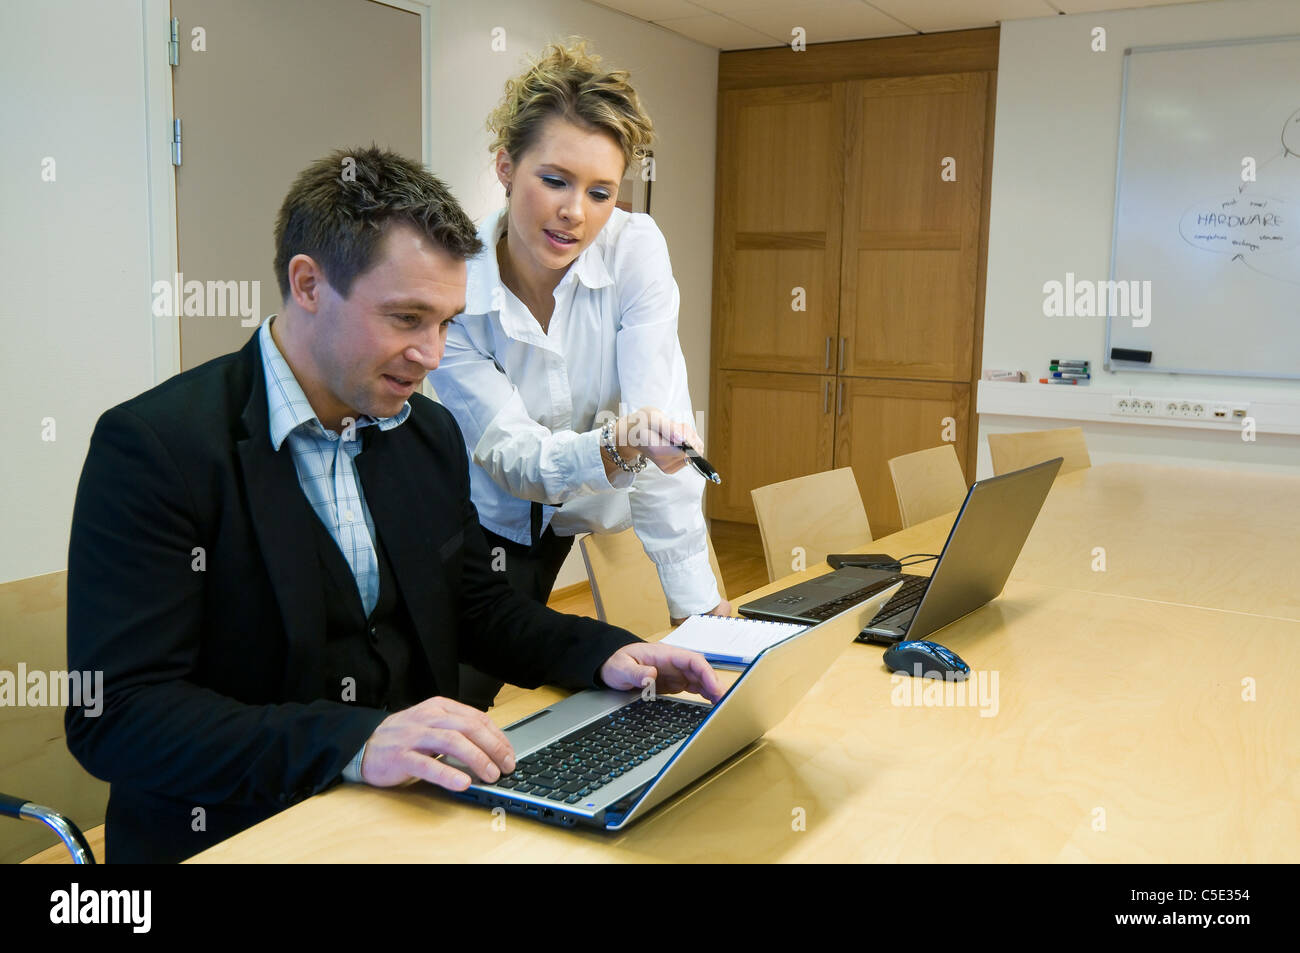 Male and female colleagues discussing a topic on the internet at office desk - Stock Image